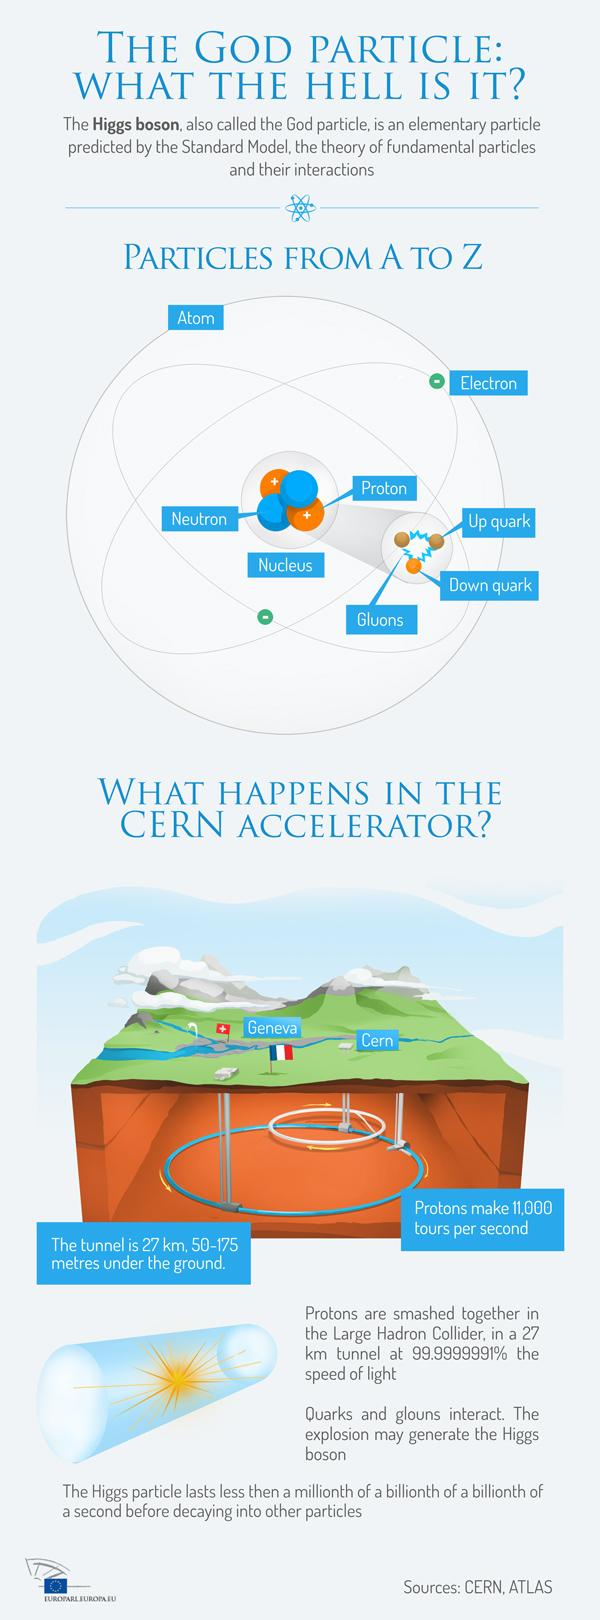 Find out more about the Higgs boson in our infographic